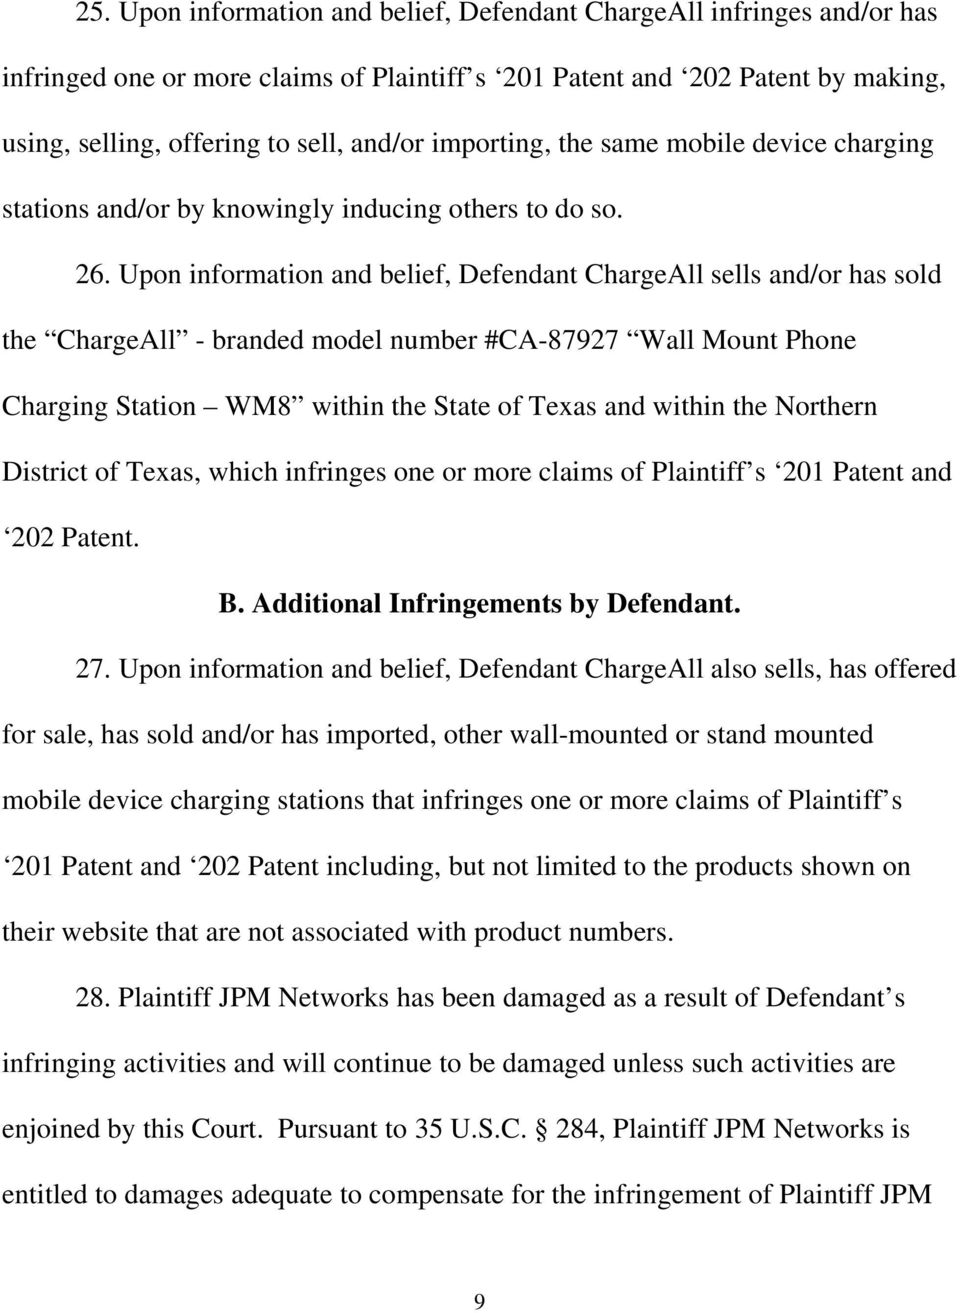 Upon information and belief, Defendant ChargeAll sells and/or has sold the ChargeAll - branded model number #CA-87927 Wall Mount Phone Charging Station WM8 within the State of Texas and within the